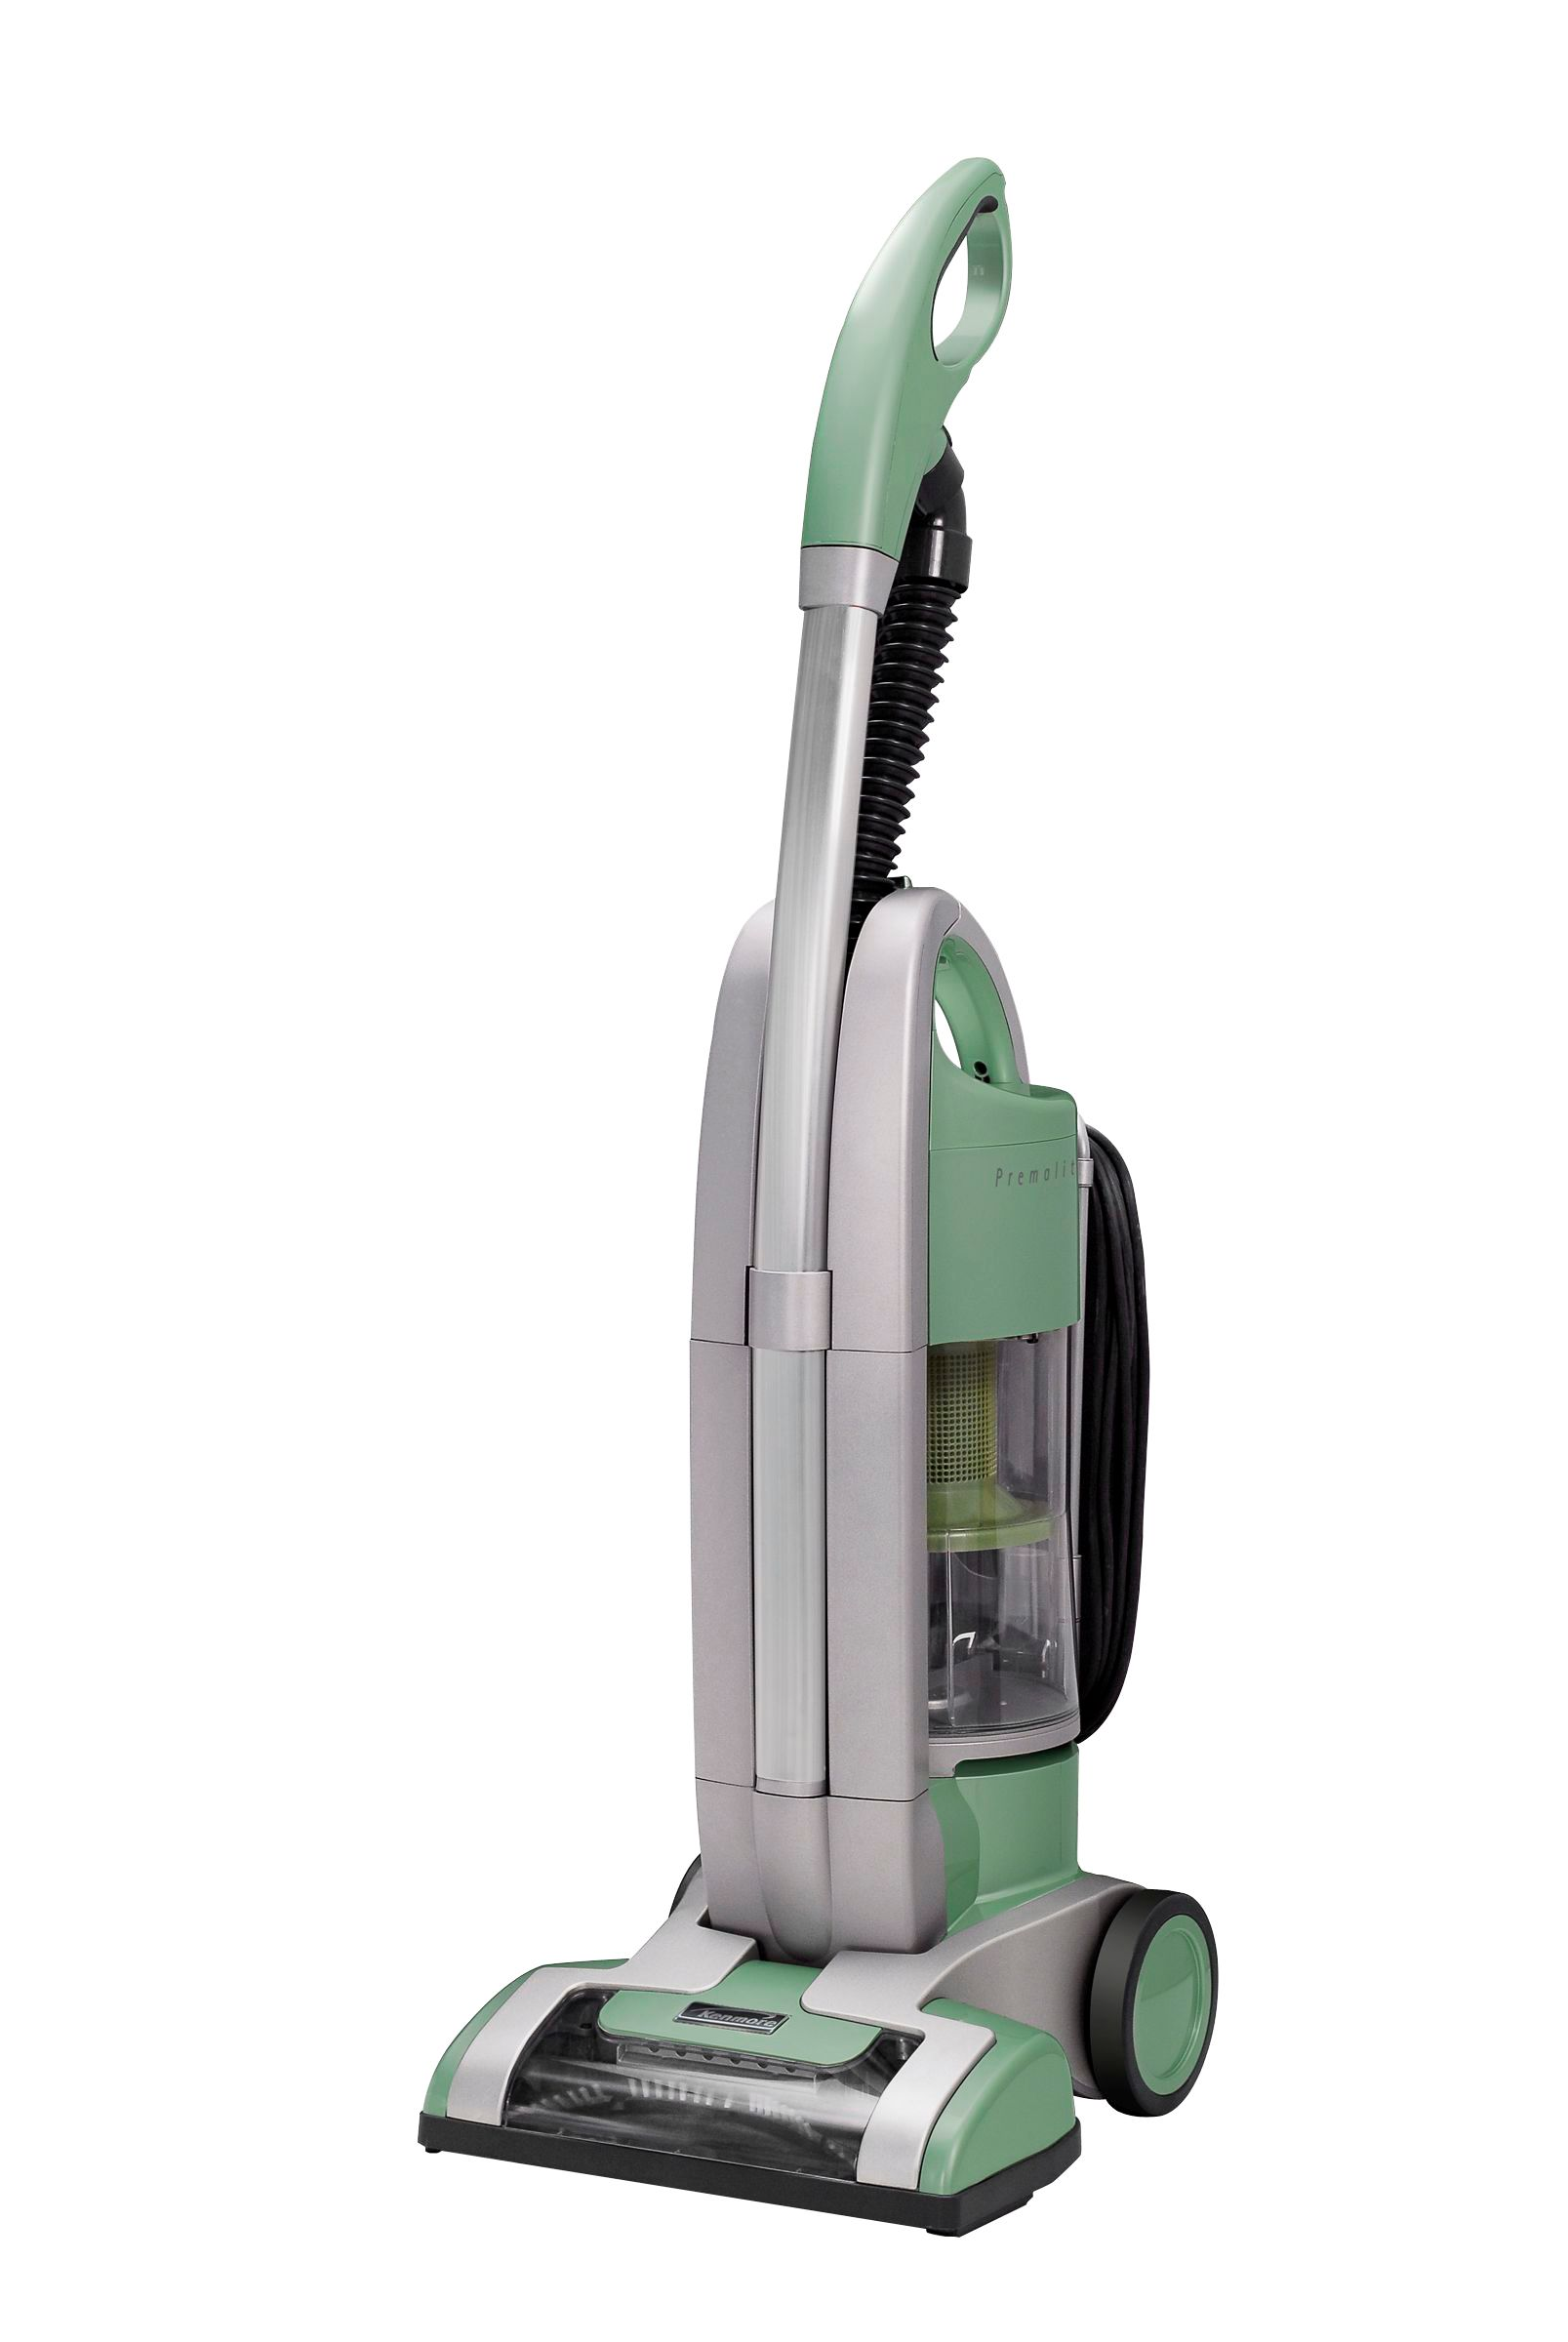 Kenmore Premalite Vacuum Cleaner Green (VF6712TC)